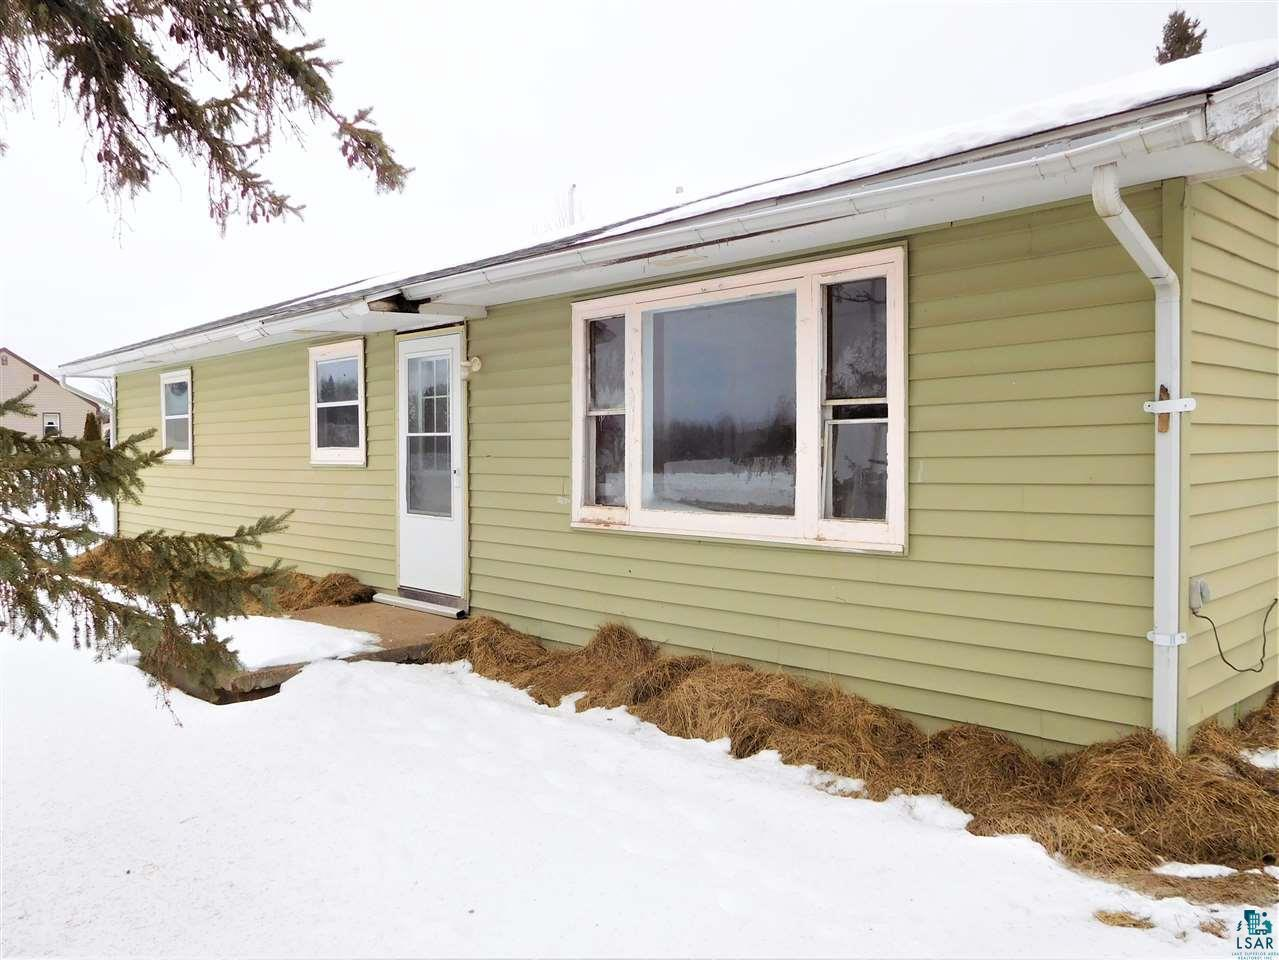 Two-bed, one bath, one level home located on HWY C just off of HWY 13.   Bring your elbow grease & fixer upper attitude and dive in!   The front entry leads into the bright living room and the back entry opens into a mud room.  Eat-in kitchen with breakfast nook. All one level the utility room is just off the back entry. Three buildings out back provide some storage and this property offers a yard that lets you enjoy country living and still be close enough to city amenities. Located near the Town of Marengo this home is just under a fifteen minute drive to Ashland.  Fiber Optic available powered by Norvado.